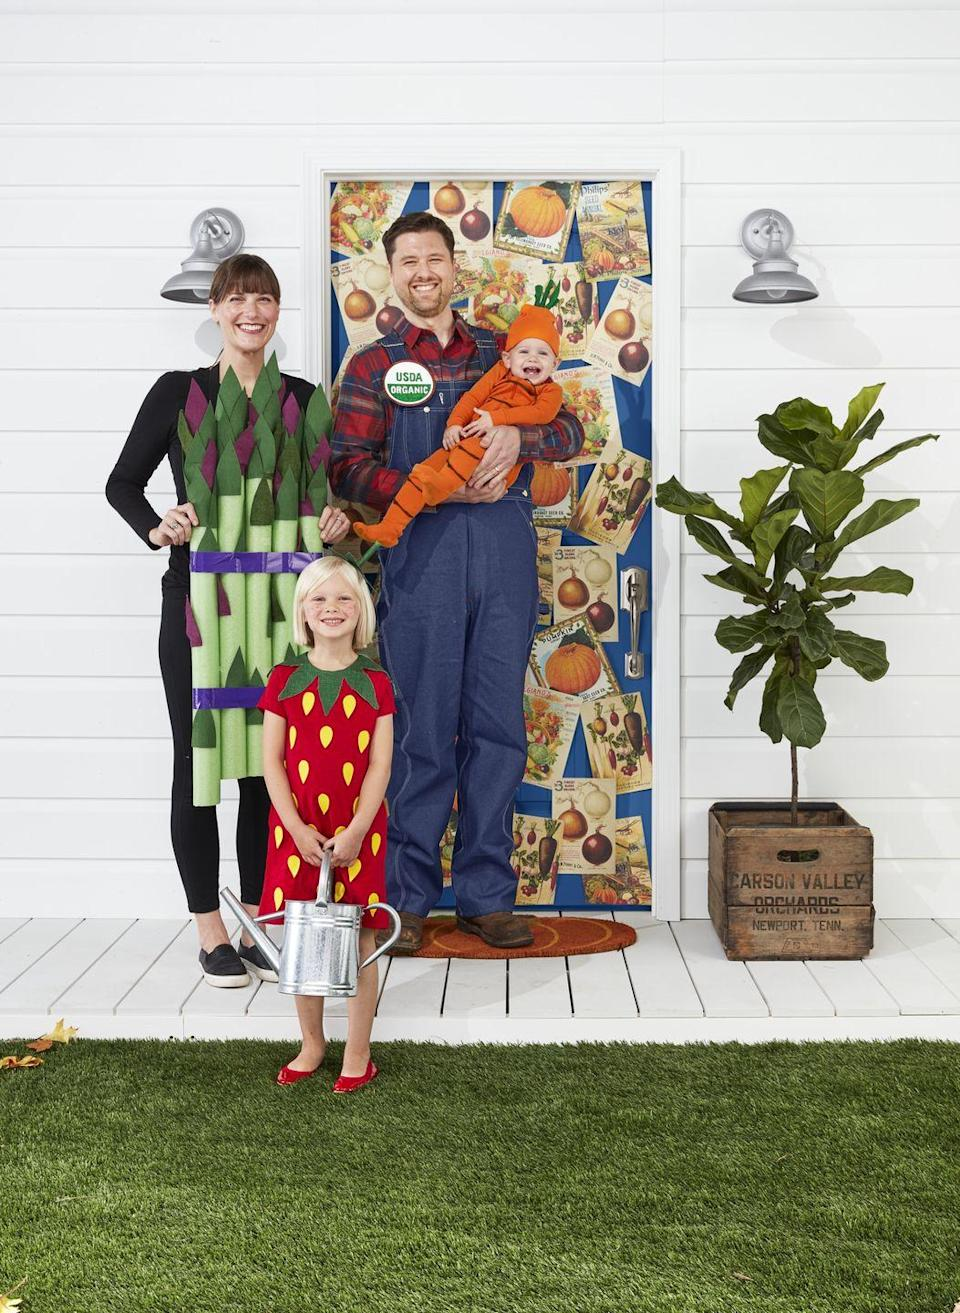 """<p>How fun and different is this idea? Dress your partner up like a farmer, don your finest veggie-inspired attire, and throw your children into DIY produce outfits. Your daughter is likely sweet enough without a strawberry outfit on, but a little extra cuteness never hurt anyone! </p><p><strong>Make the Asparagus Costume: </strong>Gather five lime green pool noodles. Cut leaves from purple and green felt (see <a href=""""https://www.countryliving.com/diy-crafts/how-to/a3048/halloween-templates-1009/"""" rel=""""nofollow noopener"""" target=""""_blank"""" data-ylk=""""slk:template"""" class=""""link rapid-noclick-resp"""">template</a>); you will need 10 to 12 for each stalk. Adhere to noodles, concentrating them at the top, with spray adhesive. Bundle pool noodles with purple duct tape. Tape a pair of suspenders to the back of the noodles and drape over shoulders. </p><p><strong>Make the Farmer Costume: </strong>Draw USDA Organic logo (see <a href=""""https://www.countryliving.com/diy-crafts/how-to/a3048/halloween-templates-1009/"""" rel=""""nofollow noopener"""" target=""""_blank"""" data-ylk=""""slk:template"""" class=""""link rapid-noclick-resp"""">template</a>) onto a 6-inch diameter piece of card stock. Color in with green and brown felt pens. Glue a safety pin to the back and attach to overalls. </p><p><strong>Make the Carrot Baby Costume: </strong>Cut thin strips of brown felt and adhere to an orange onesie—making sure to leave room for the zipper to function—with Stitch Witchery. Cut four 5- by 6-inch strips of green felt and roll, lengthwise, into tubes; adhere ends with hot-glue. Stitch on the top center of an orange beanie. </p><p><strong>Make the Strawberry Costume</strong>: Cut seeds (see <a href=""""https://www.countryliving.com/diy-crafts/how-to/a3048/halloween-templates-1009/"""" rel=""""nofollow noopener"""" target=""""_blank"""" data-ylk=""""slk:template"""" class=""""link rapid-noclick-resp"""">template</a>) from yellow felt. Adhere to a plain red dress with Stitch Witchery. Trace leaves (see <a href=""""https://www.countryliving.com/diy-"""